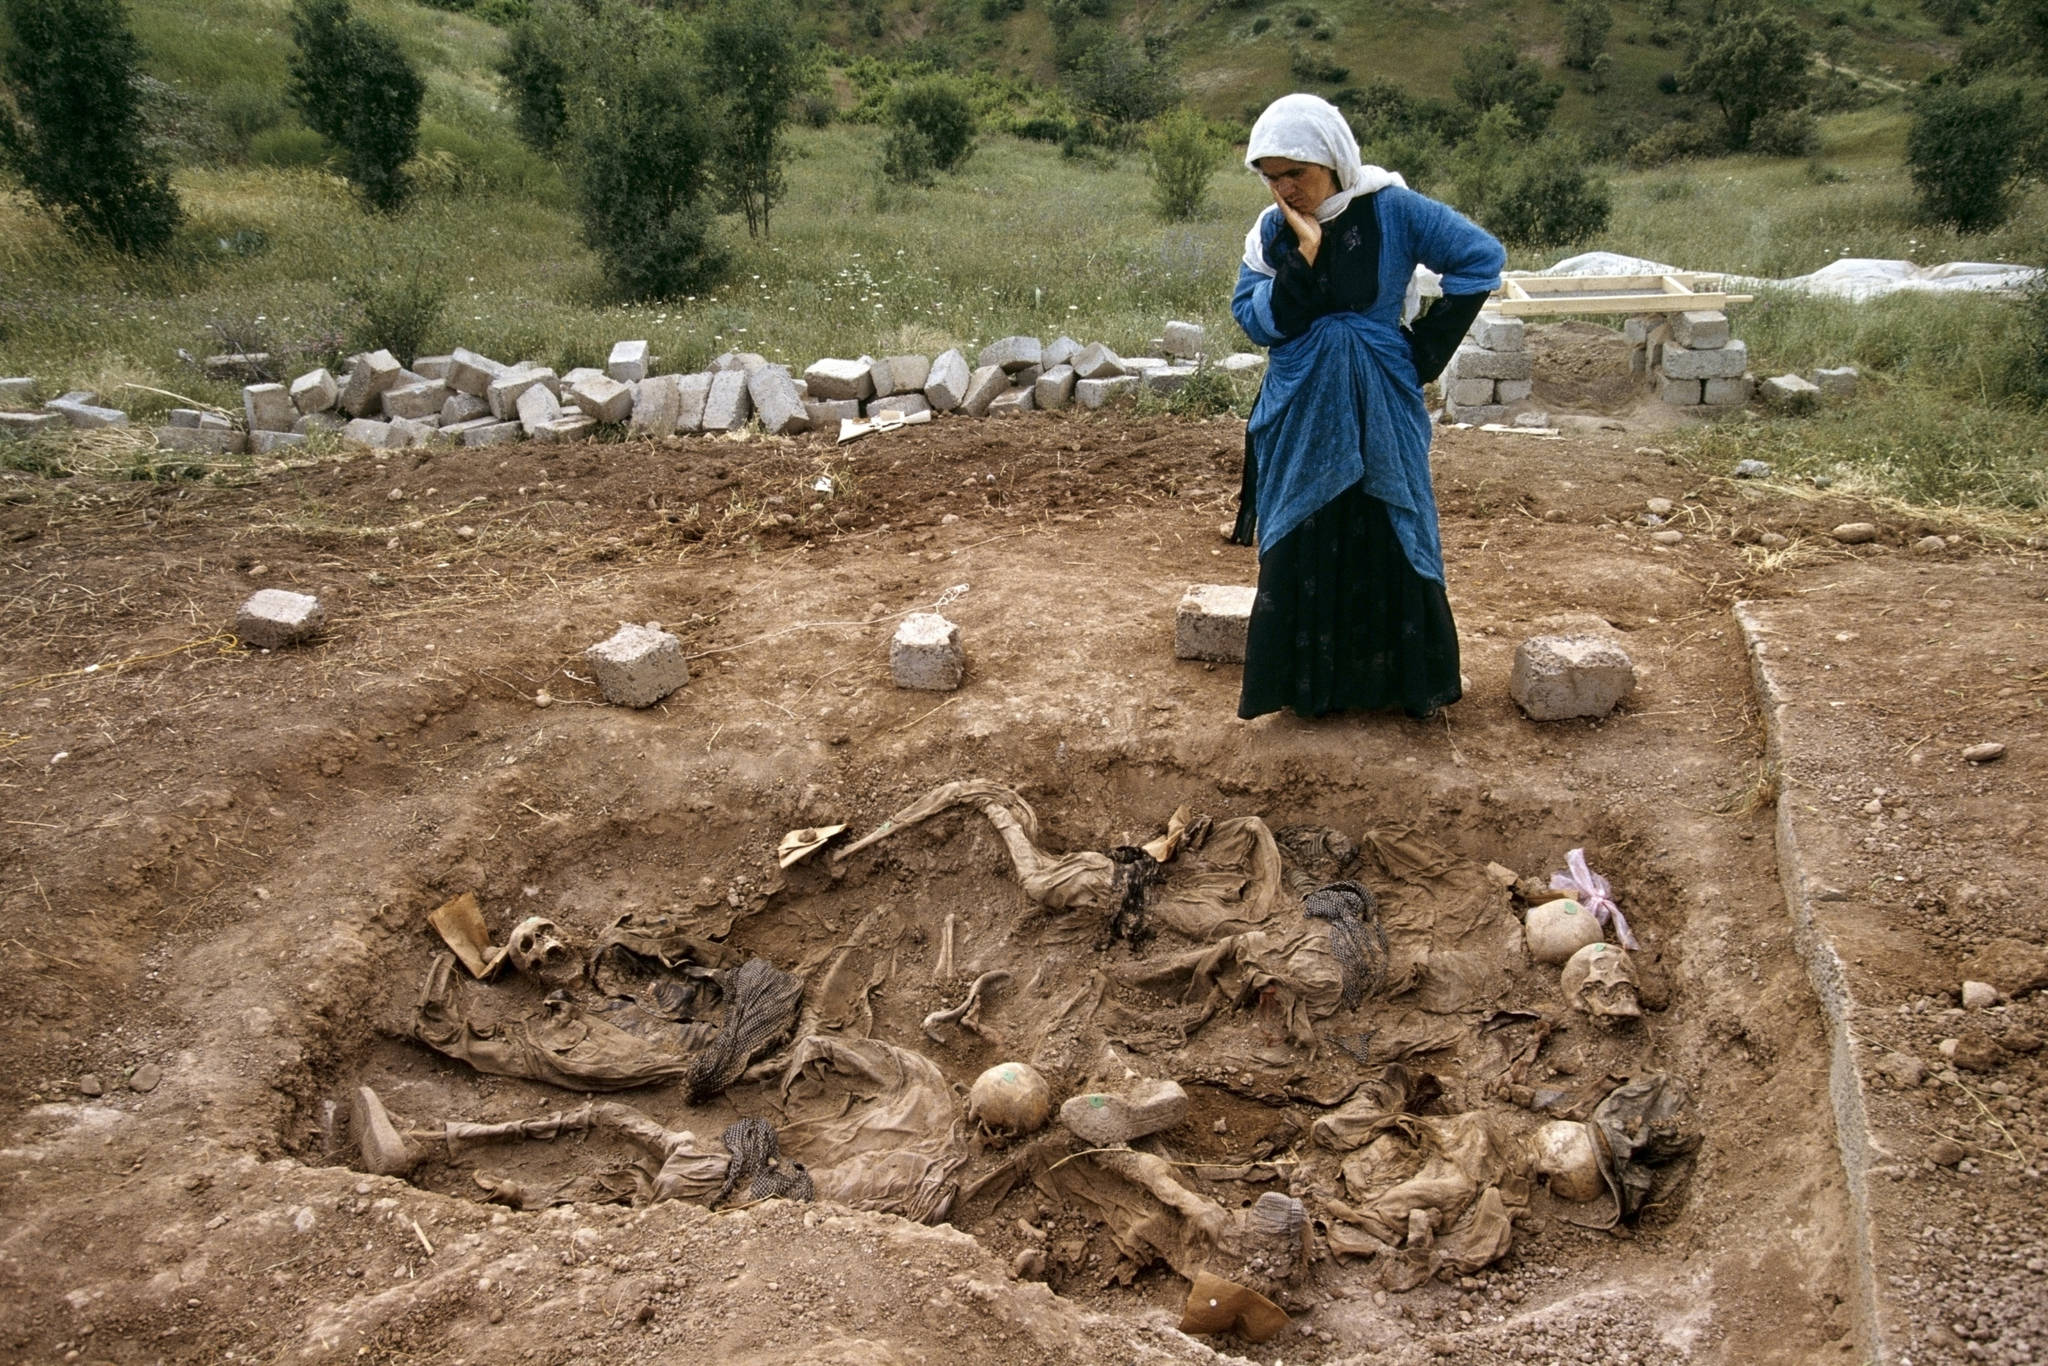 Susan Meiselas, 'Widow at mass grave found in Koreme, Northern Iraq,' 1992.